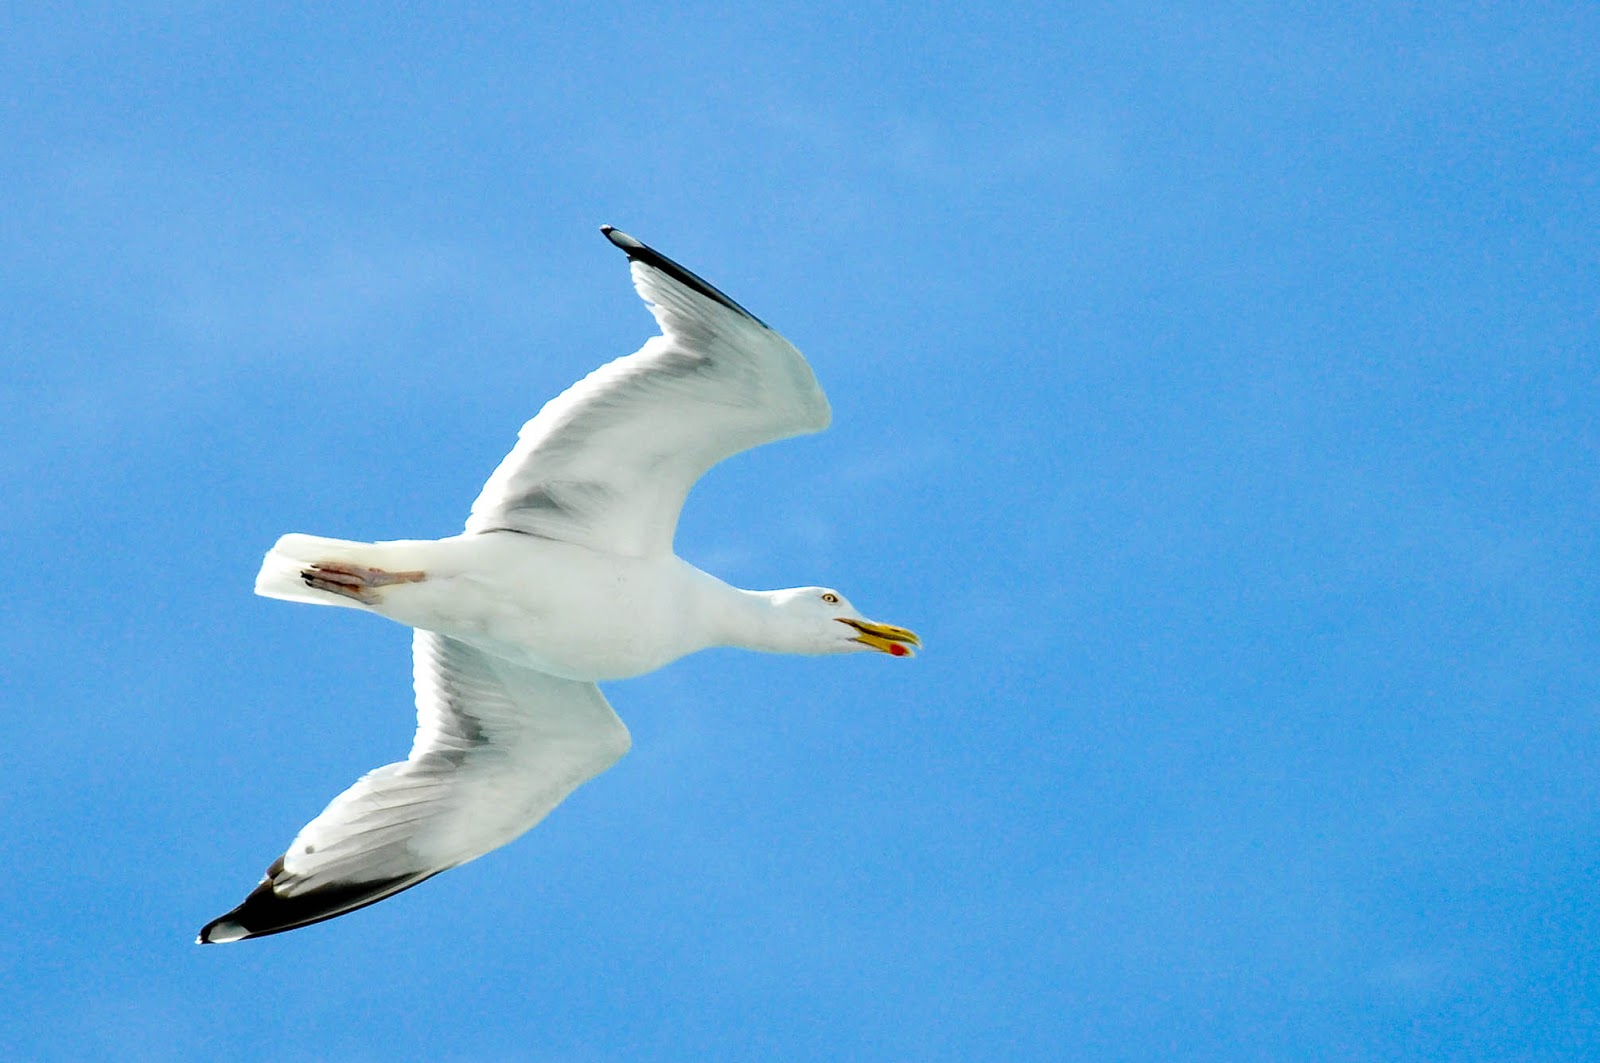 A seagull in flight seen from a DFDS ferry while crossing the English Channel back from France